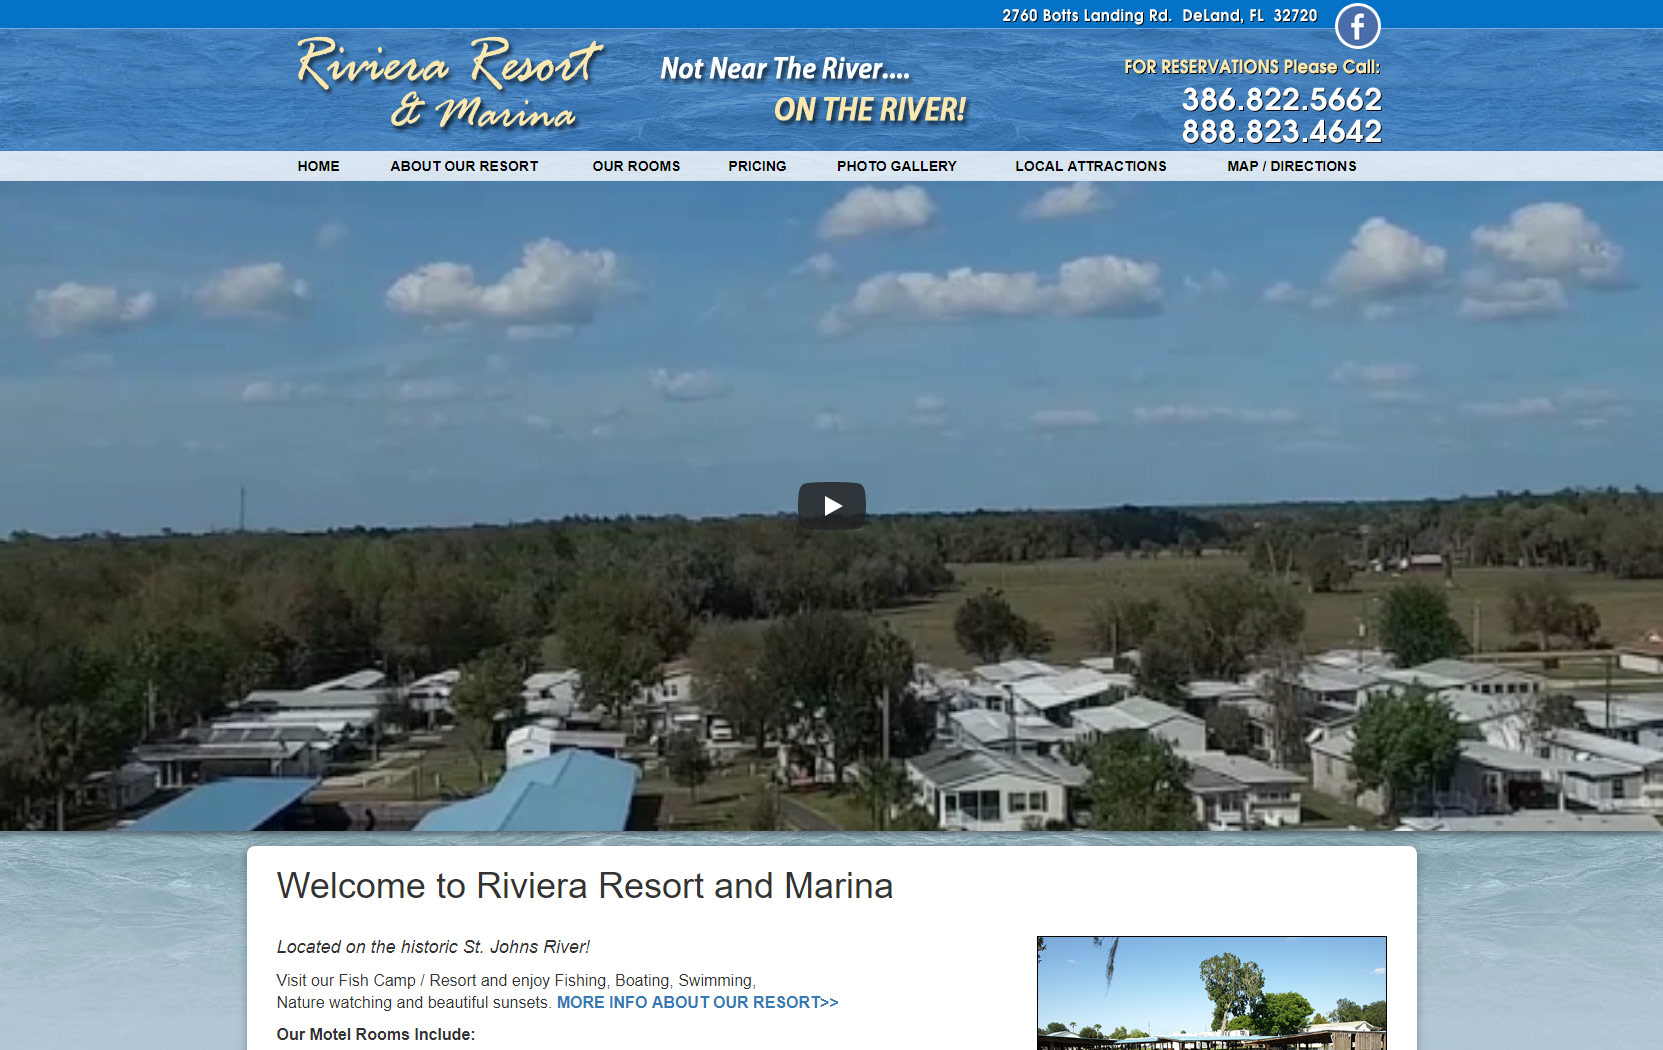 Riviera Resort & Marina